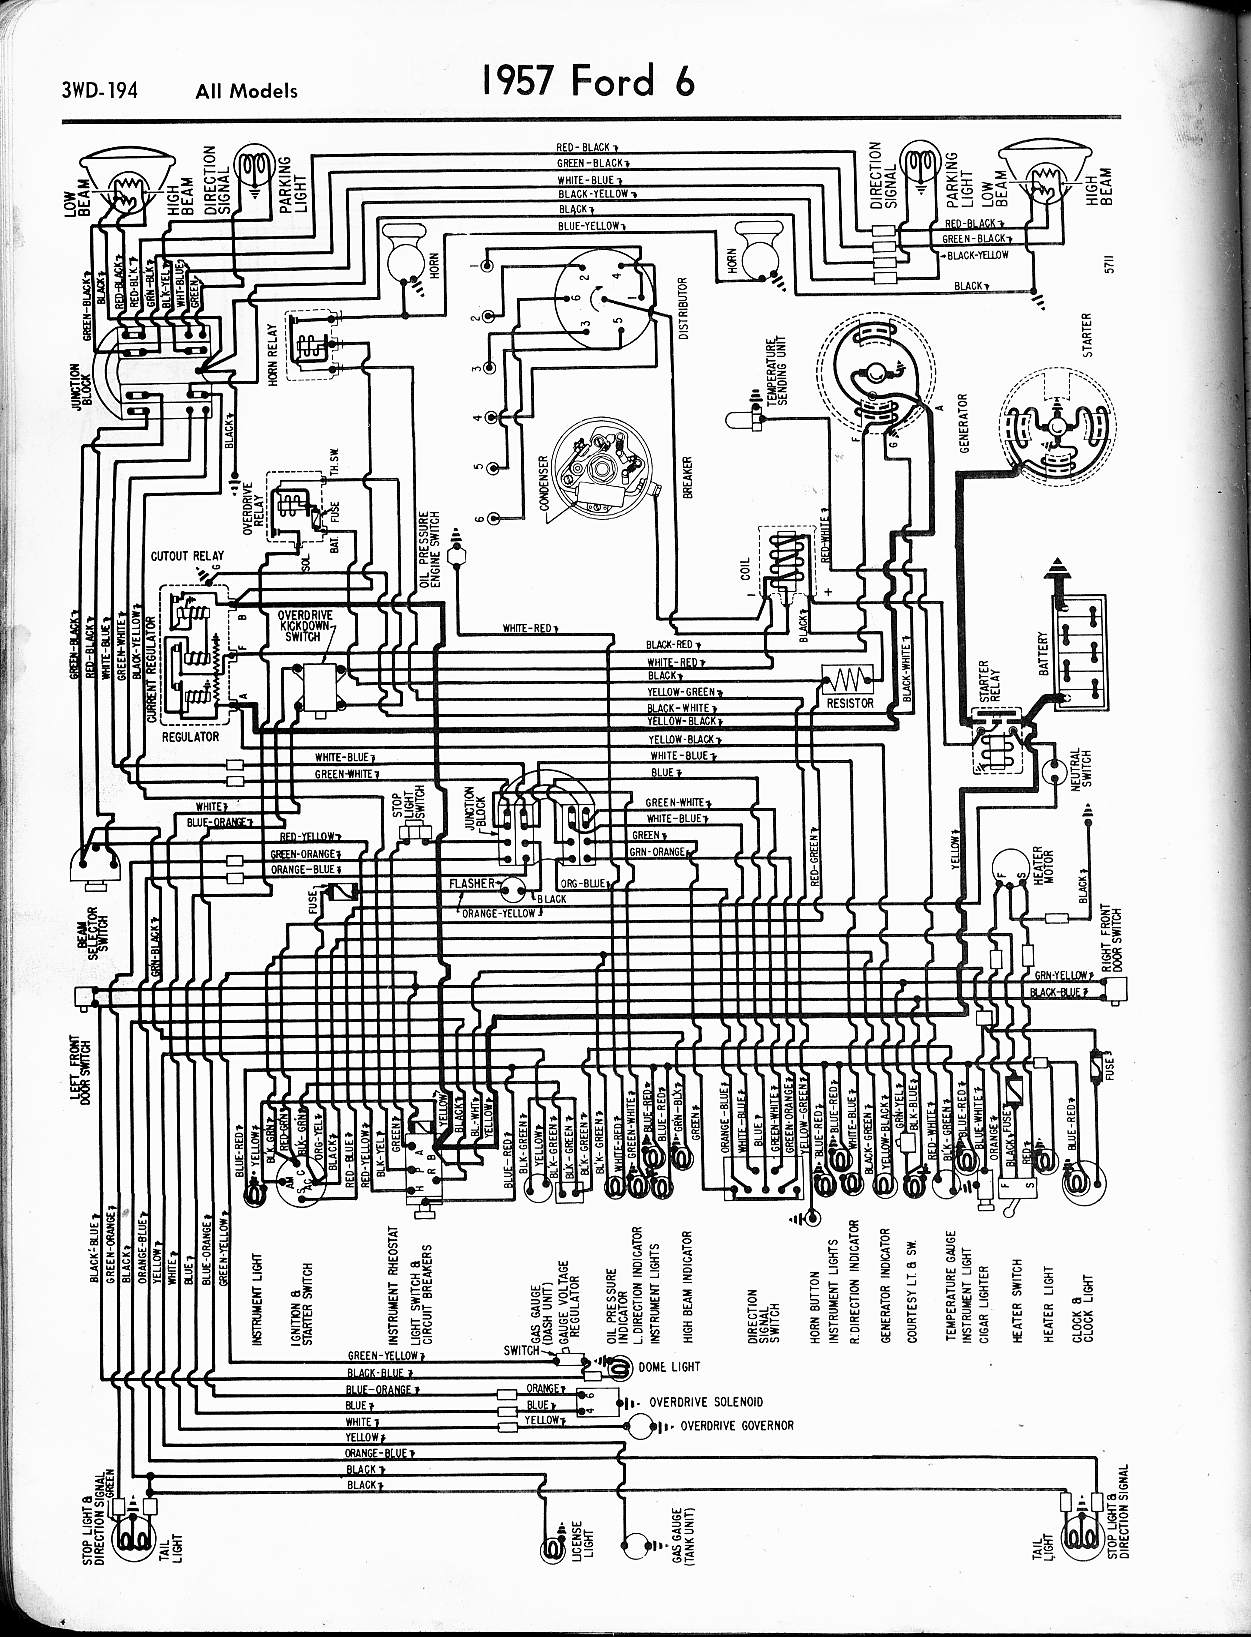 index of wiring diagrams for 1957-1965 ford  1957 6 cyl  all models